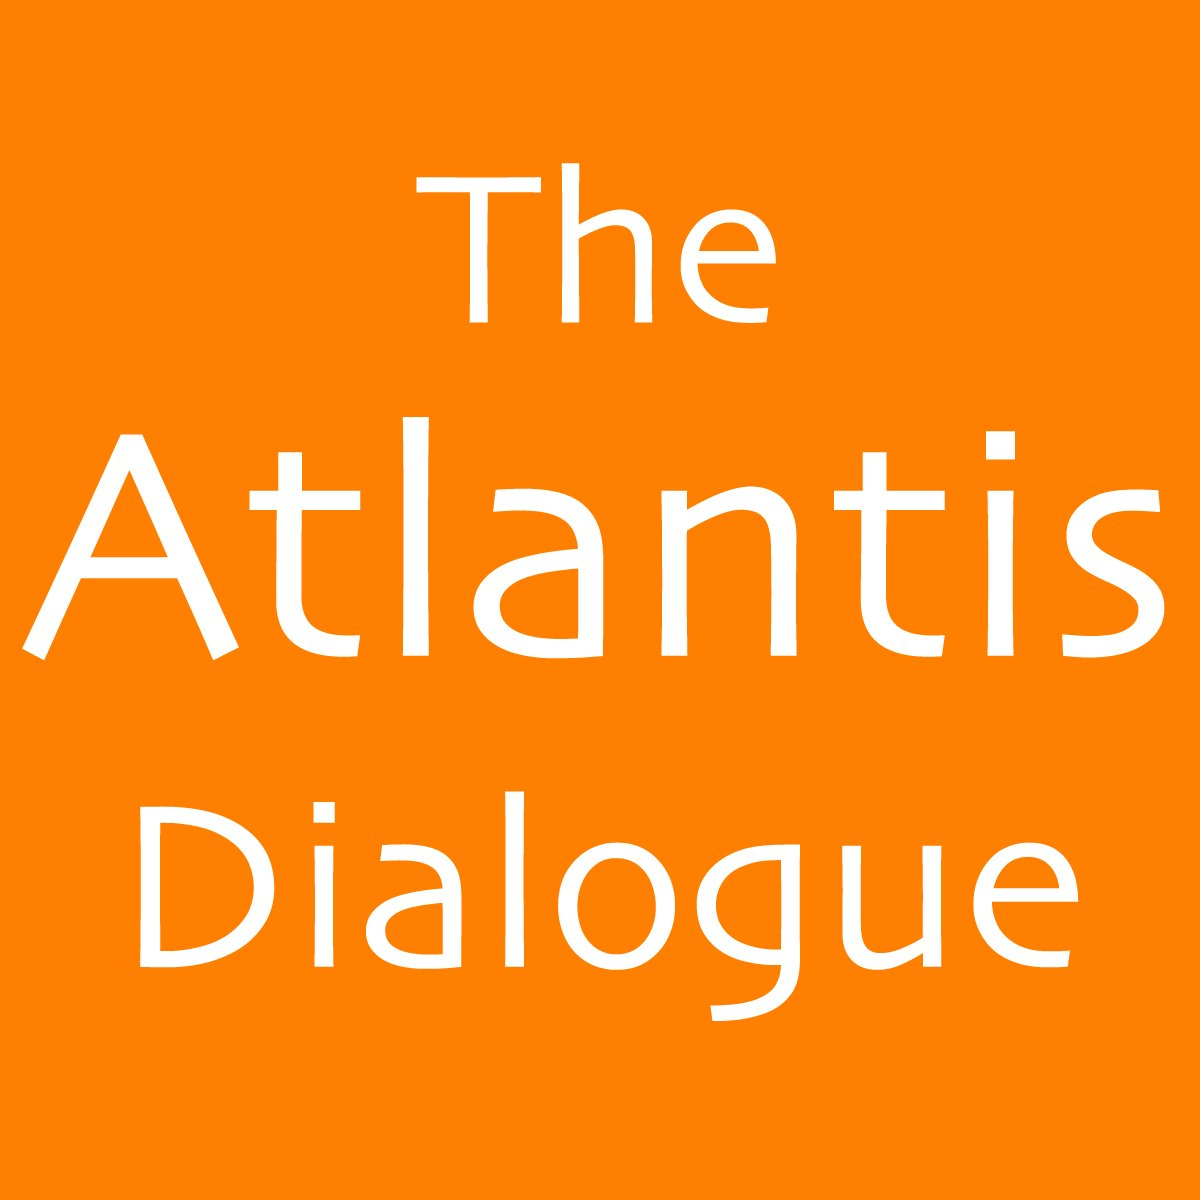 the atlantis dialogue plato s original story of the lost city and